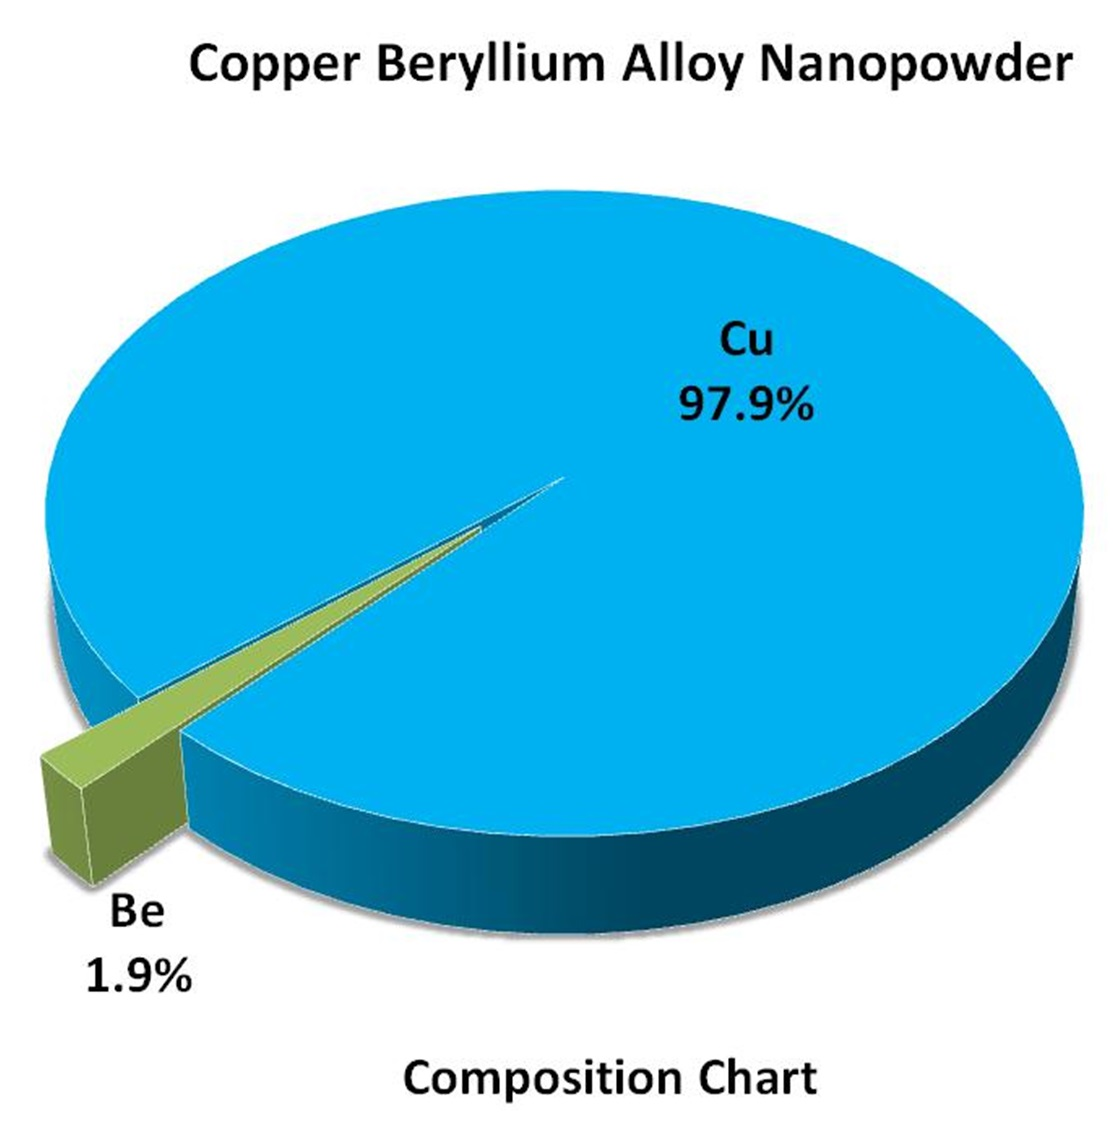 Composition Chart - CuBe Alloy Nanoparticles